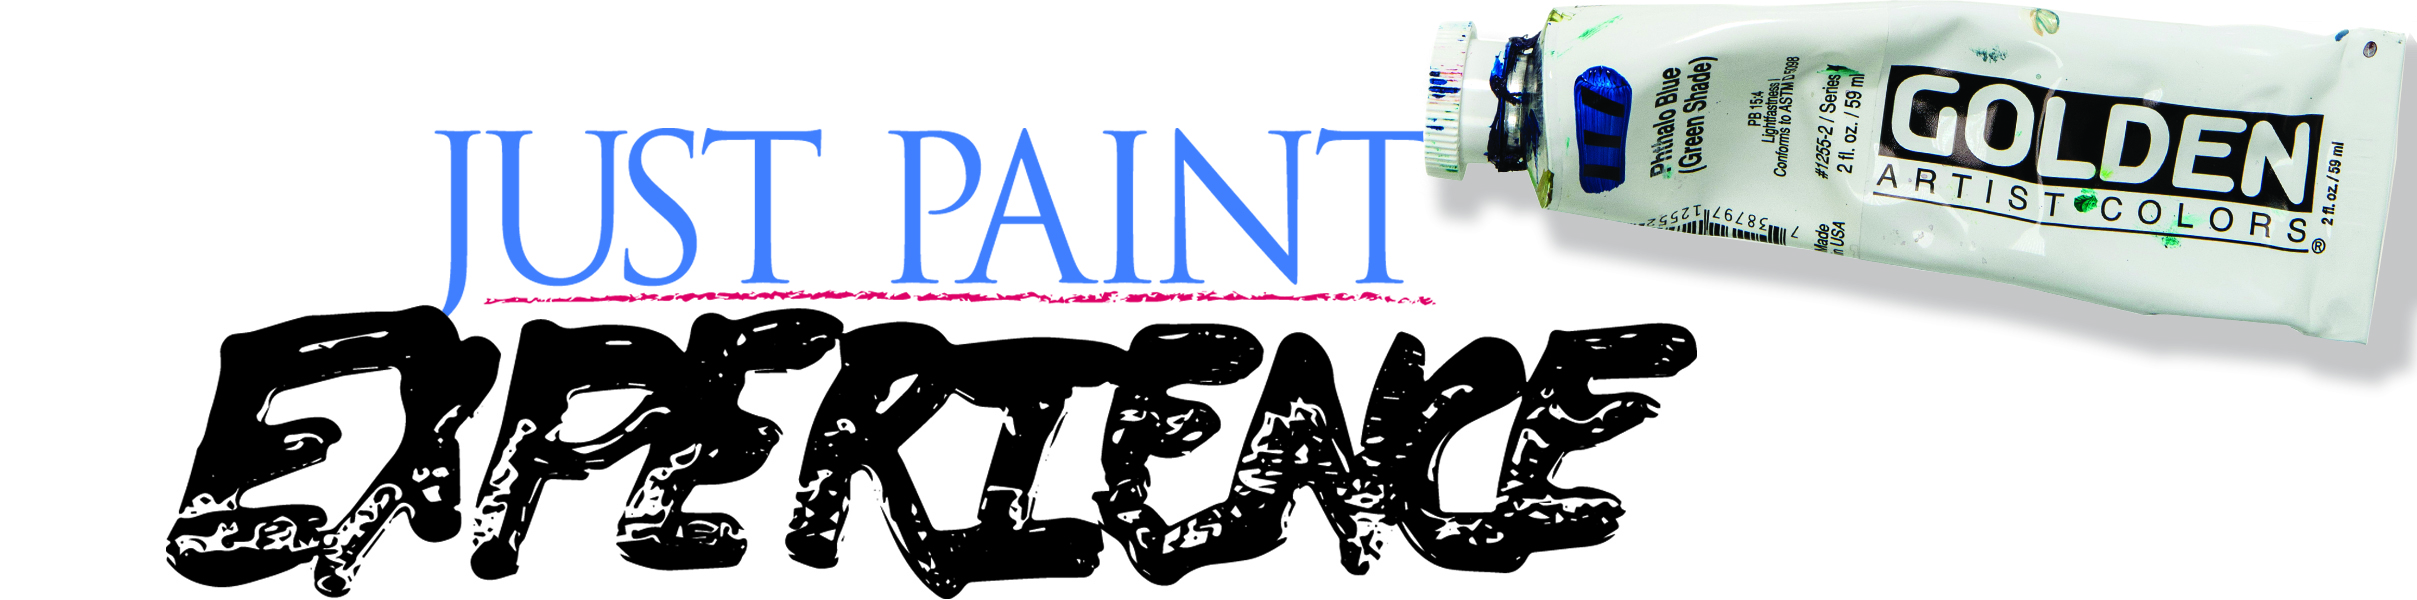 Just Paint Experience